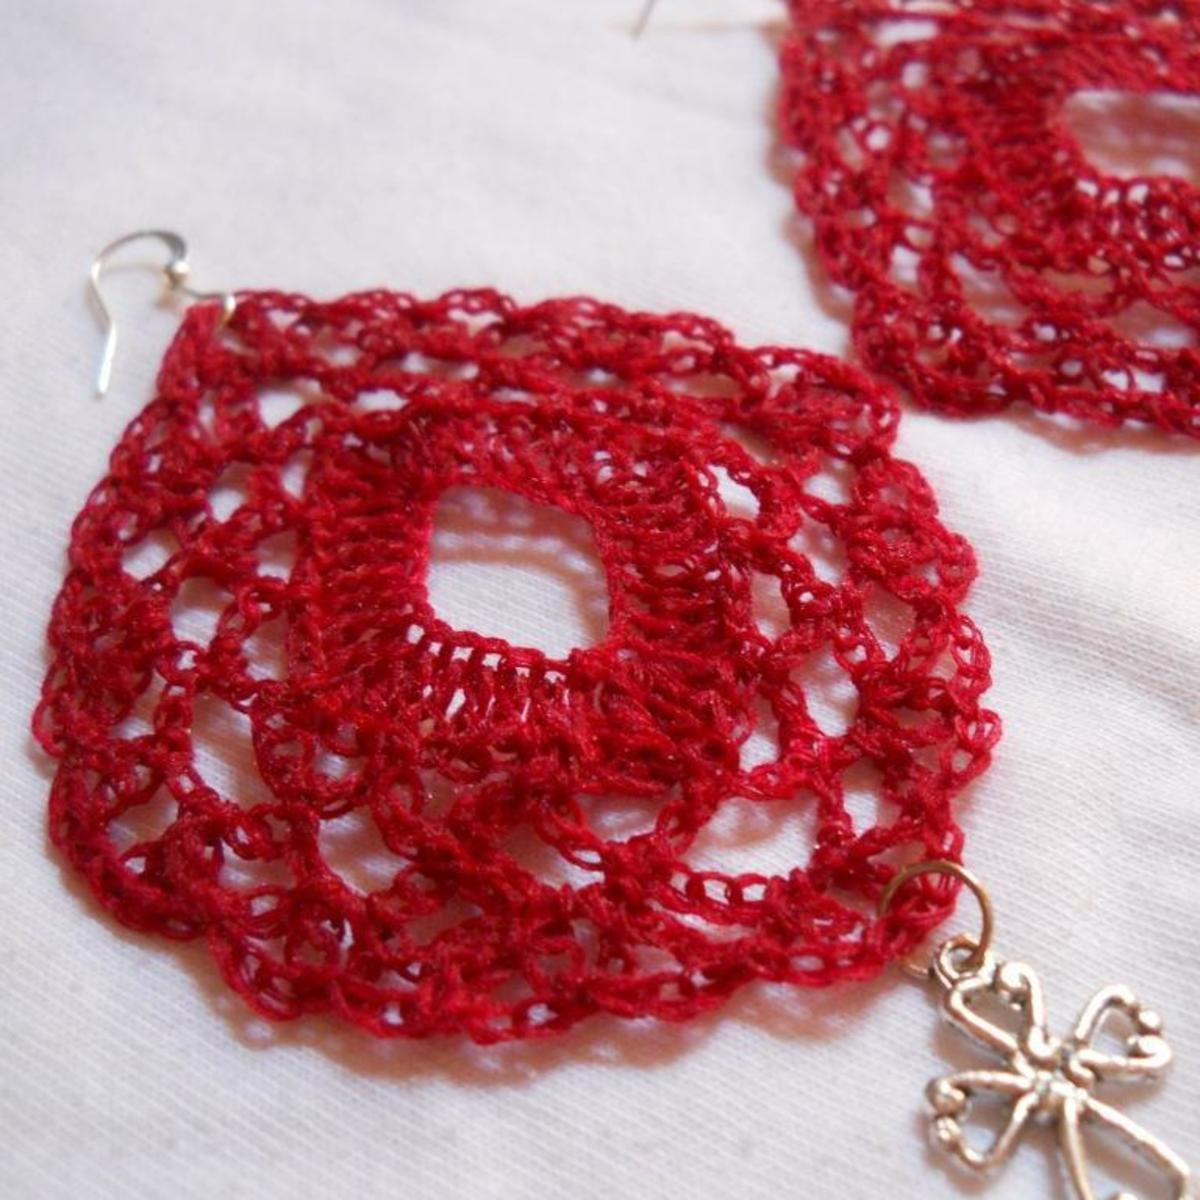 crochet-diamond-earrings-5